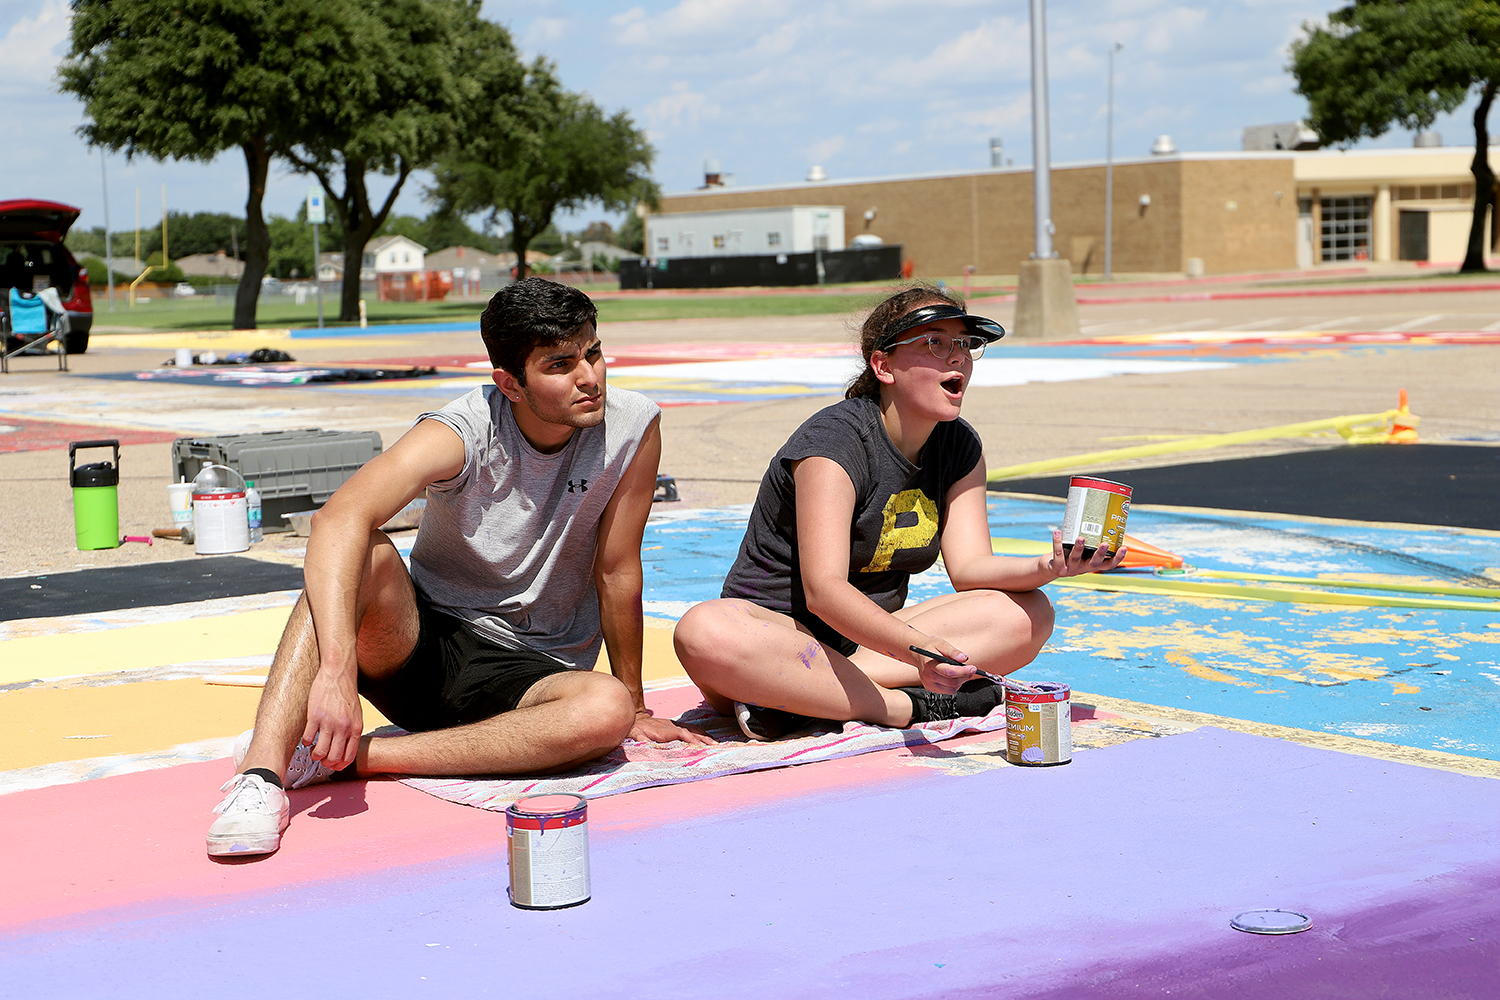 Senior Kaylee Alanis painted her parking spot with her friends on a hot day.